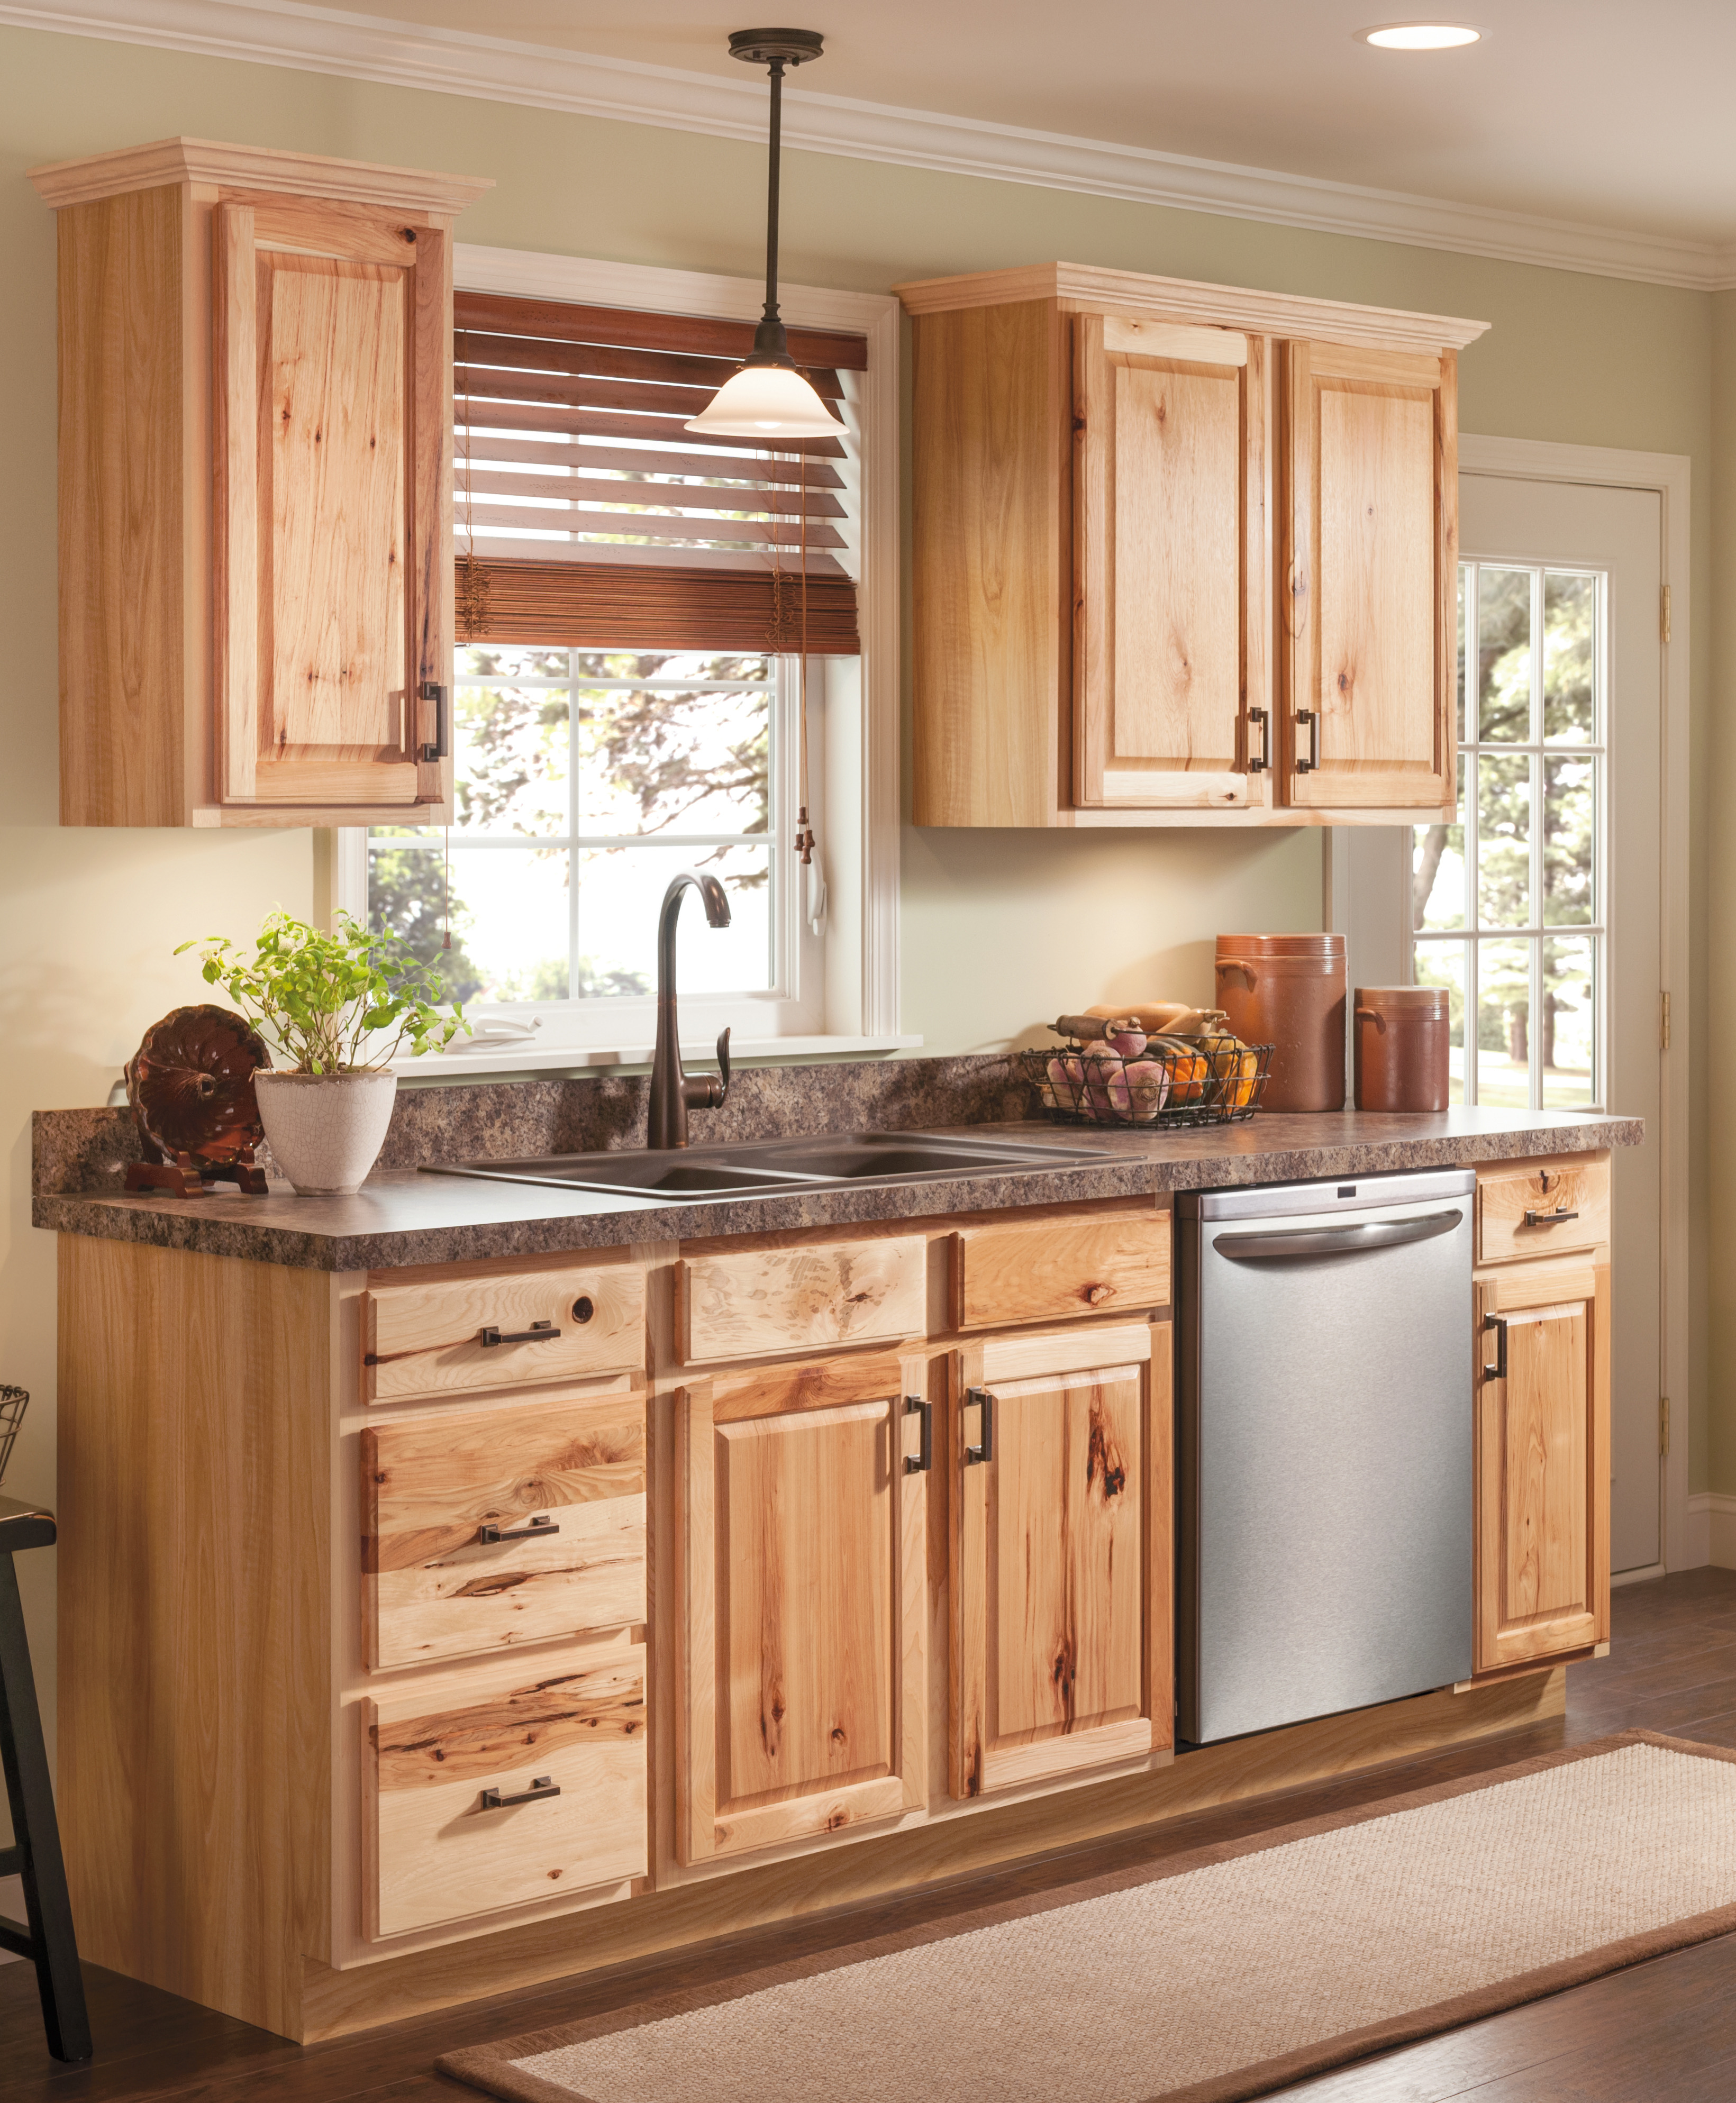 Hampton Bay Cabinet Doors Awesome Kitchen Exciting Kitchen Storage Design with Wooden Hampton